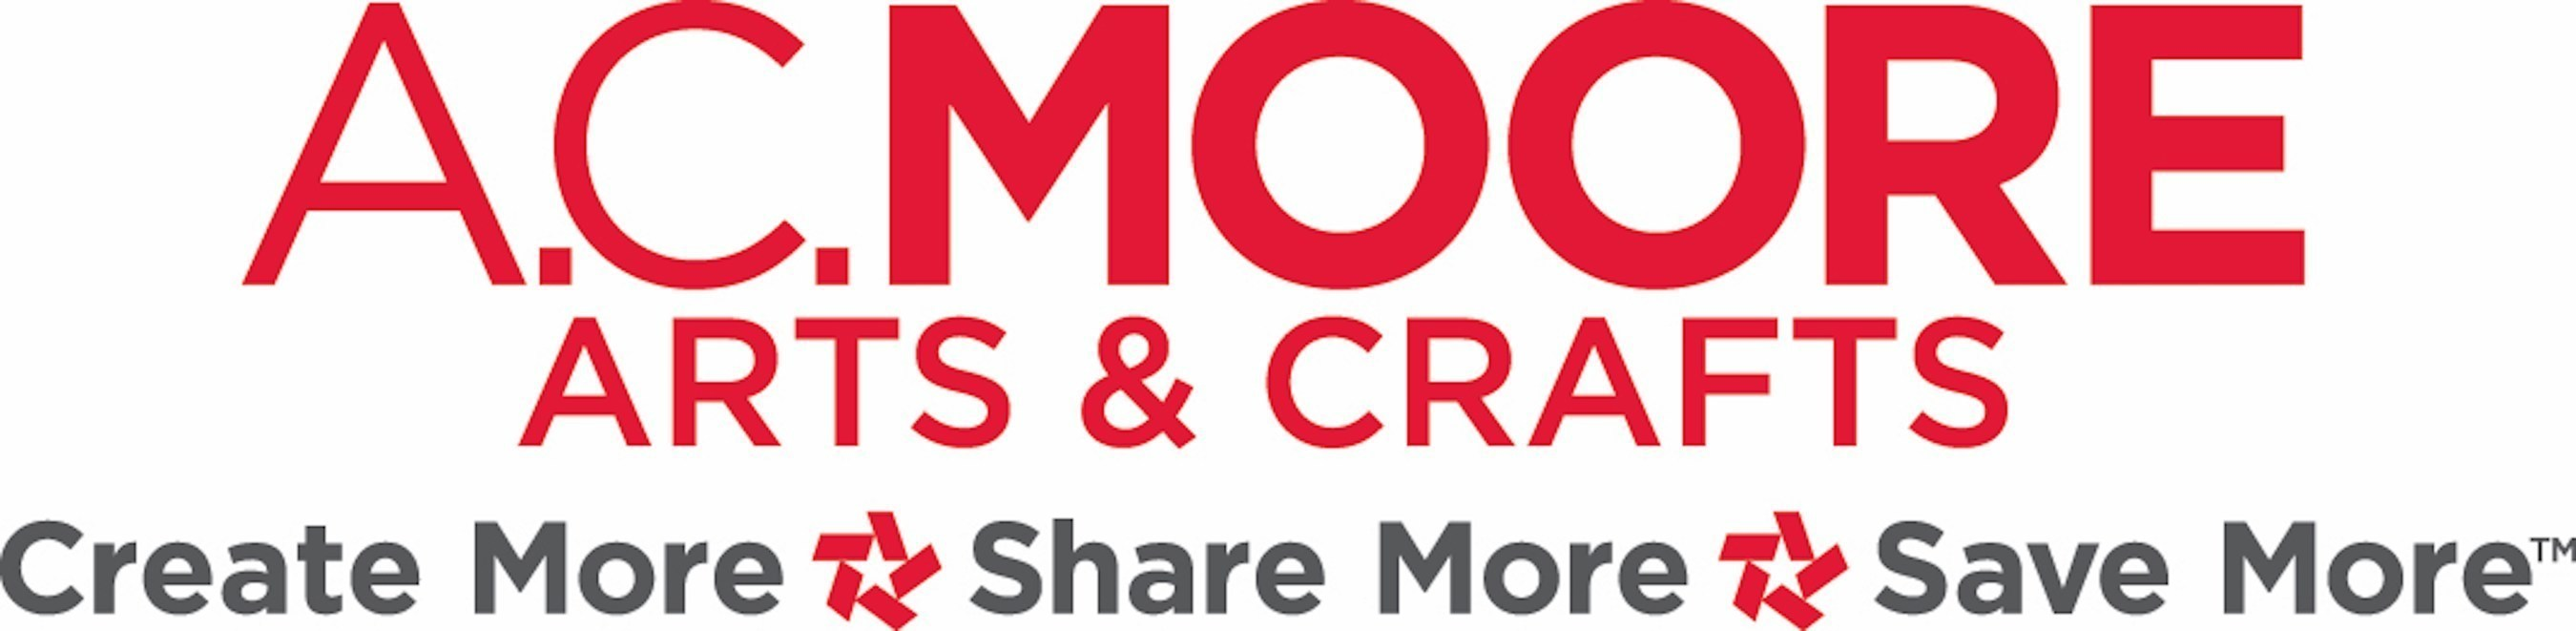 A C Moore And Kids In Need Foundation Forge Partnership To